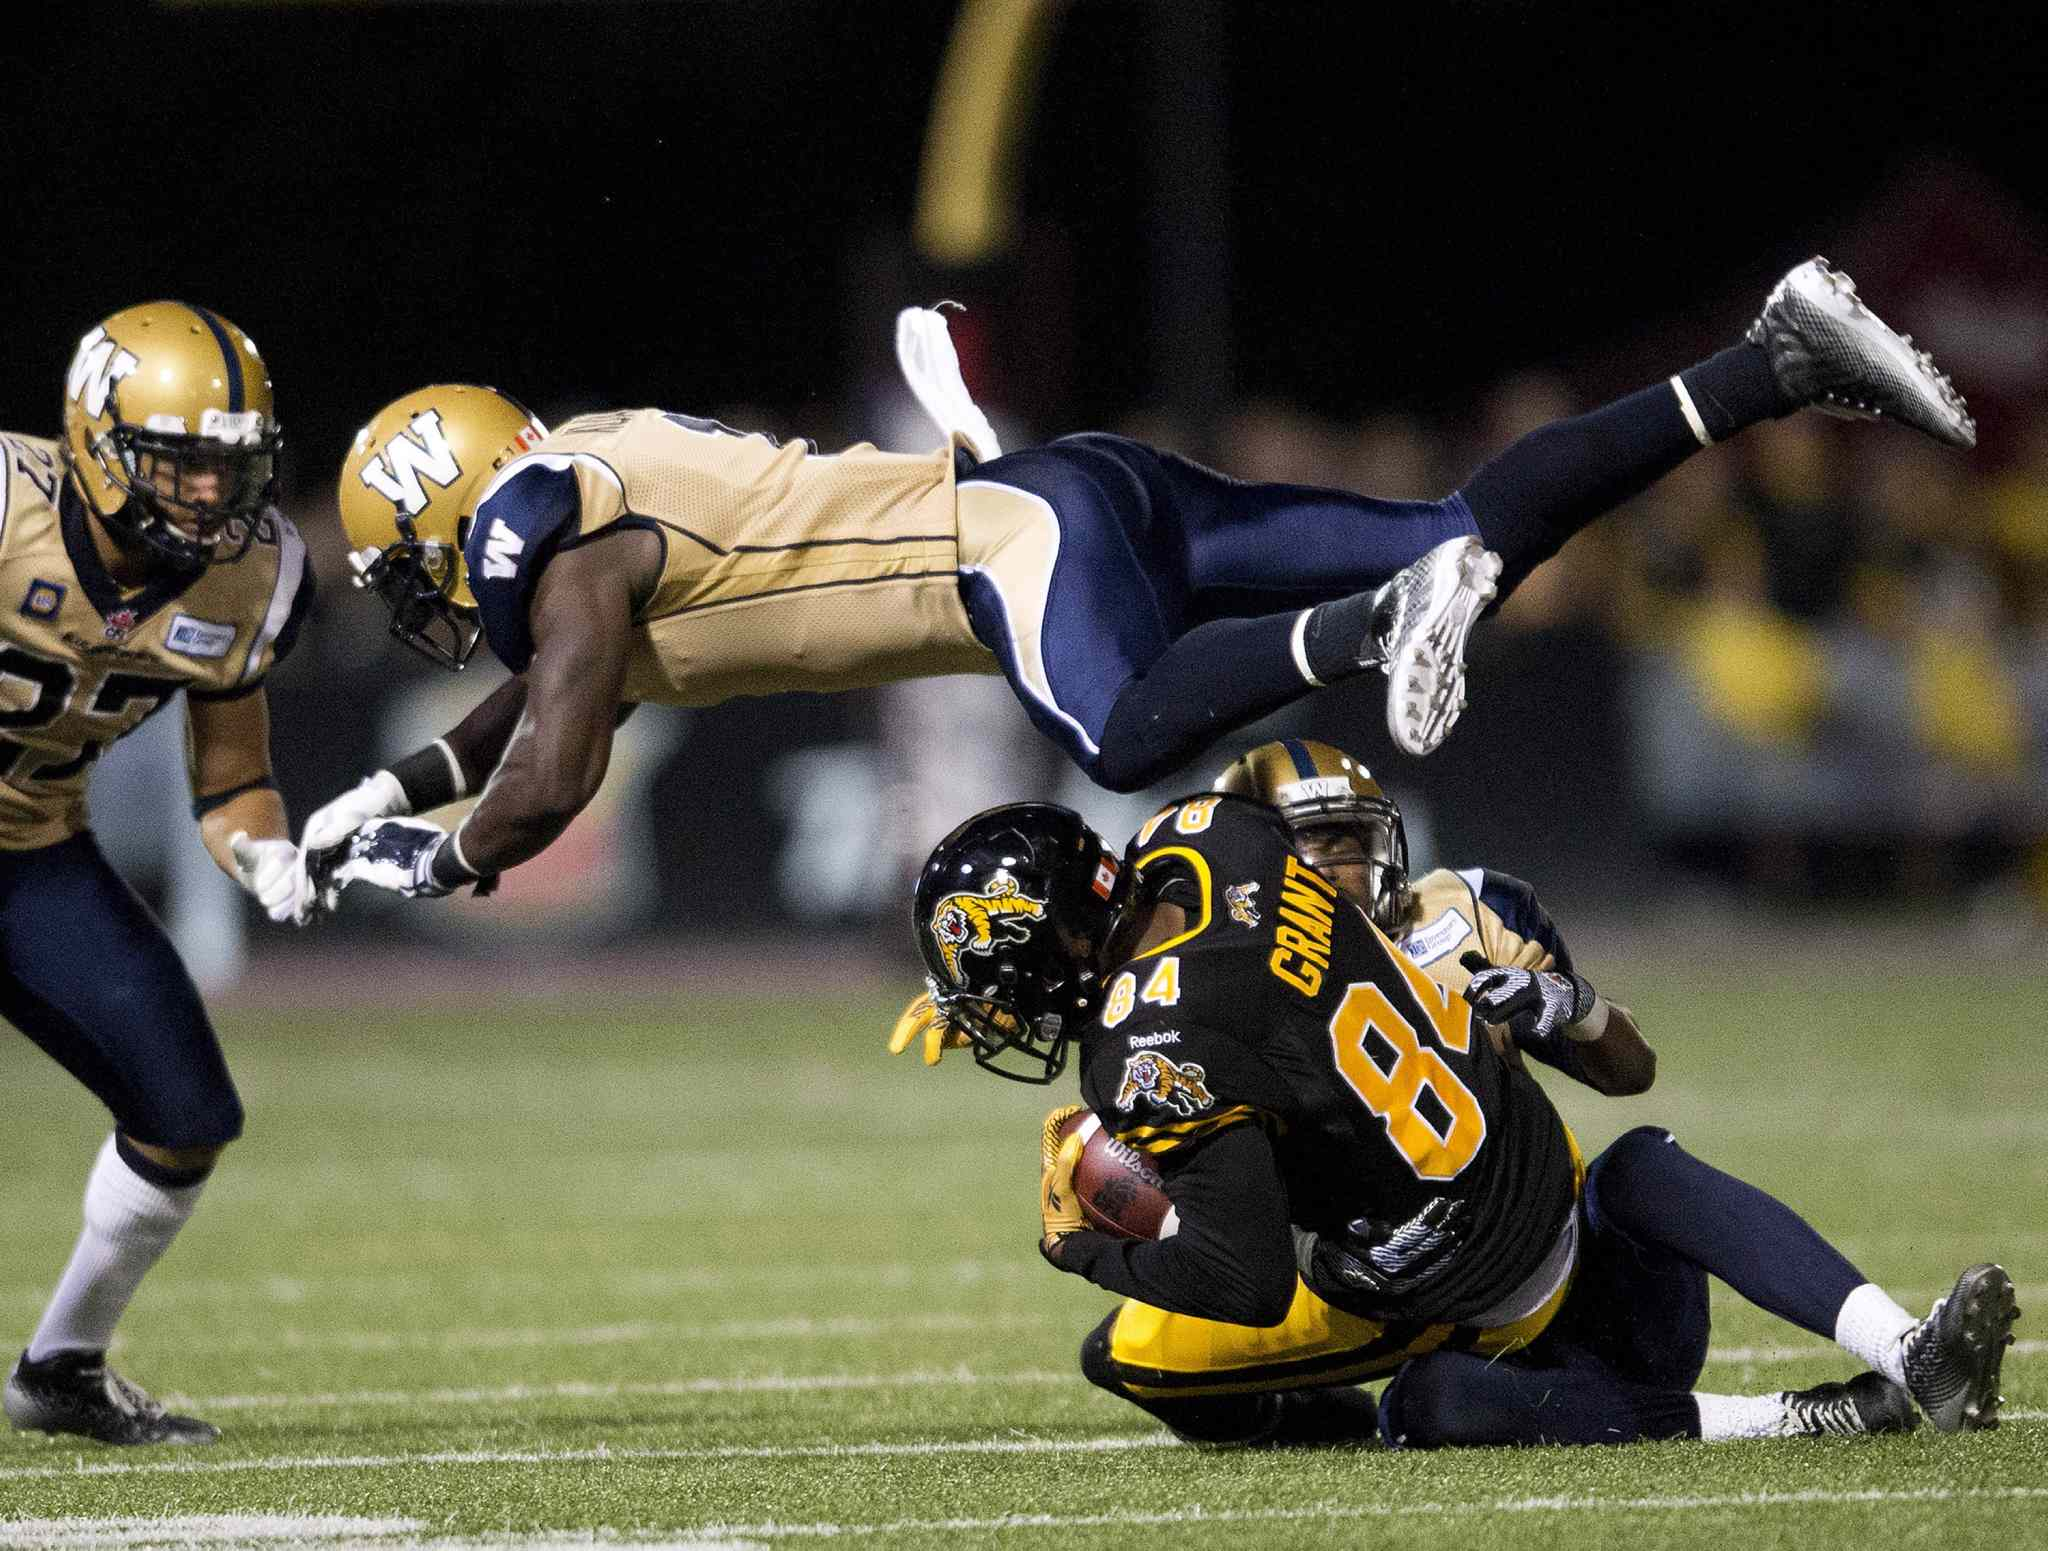 Winnipeg Blue Bombers' linebacker Ejiro Kuale leaps over Hamilton Tiger-Cats' receiver Bakan Grant, bottom right, during the second half of Thursday's game.